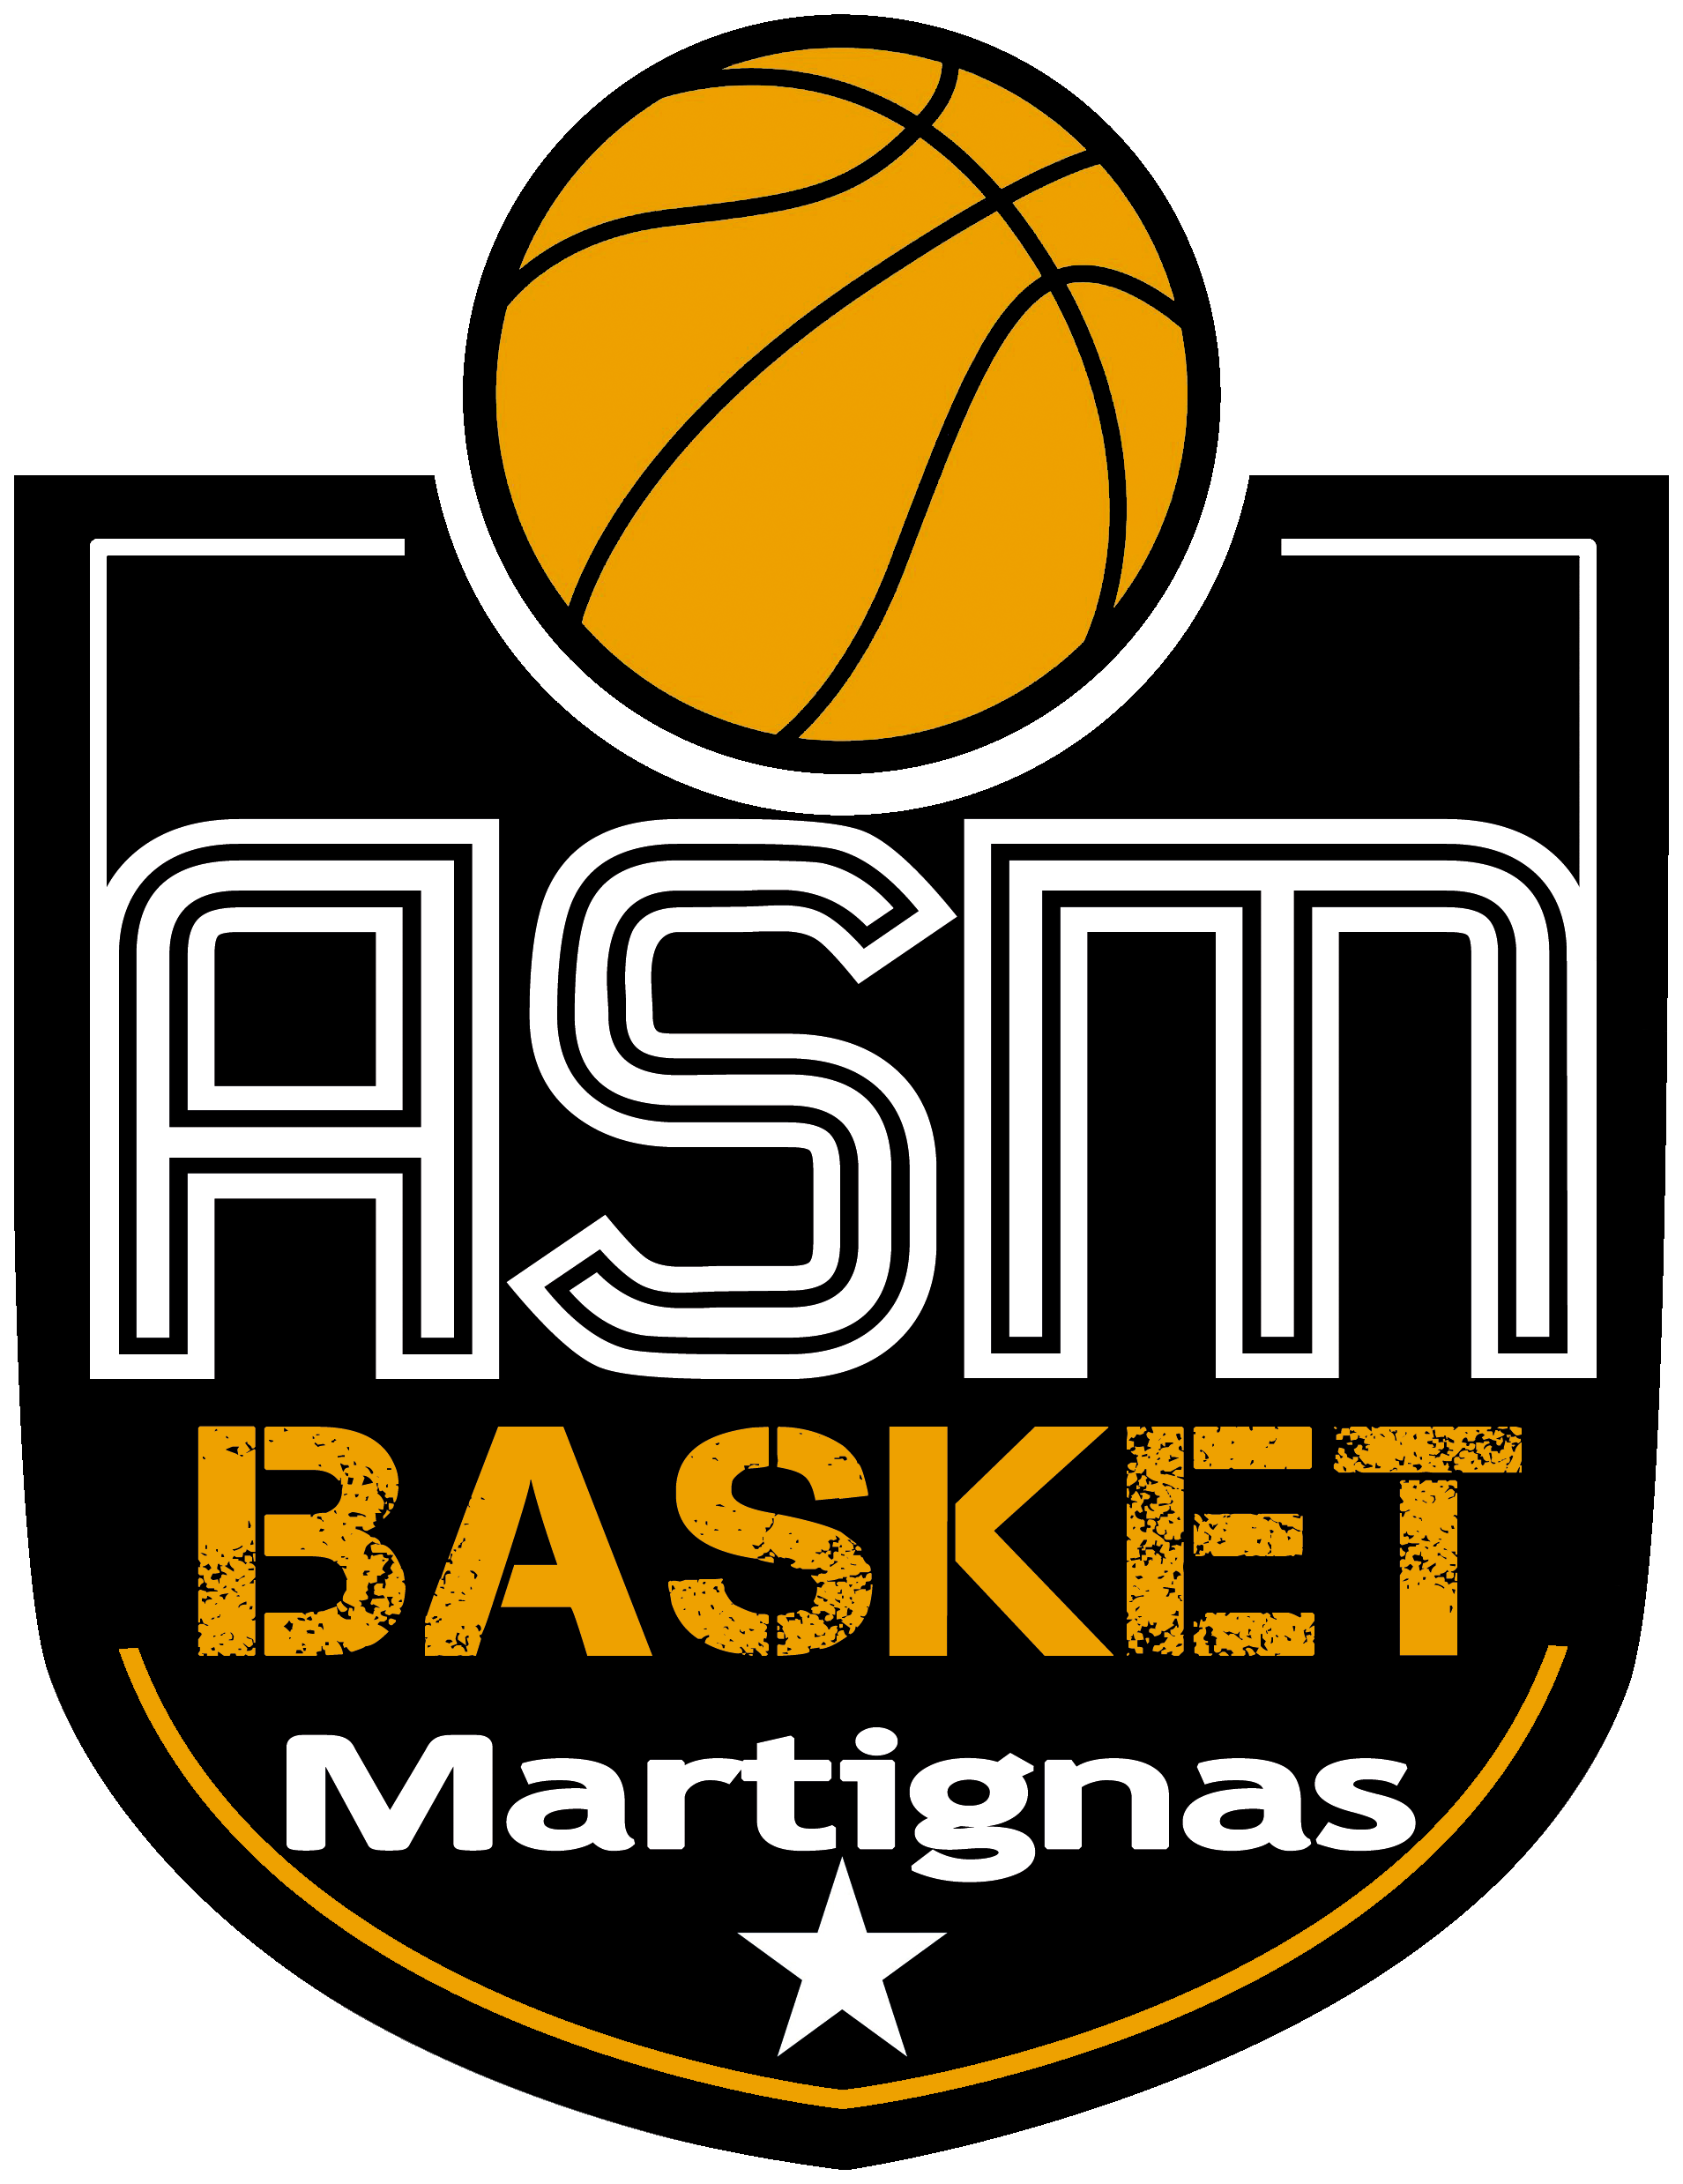 Logo-Martignas-Basket-transparent